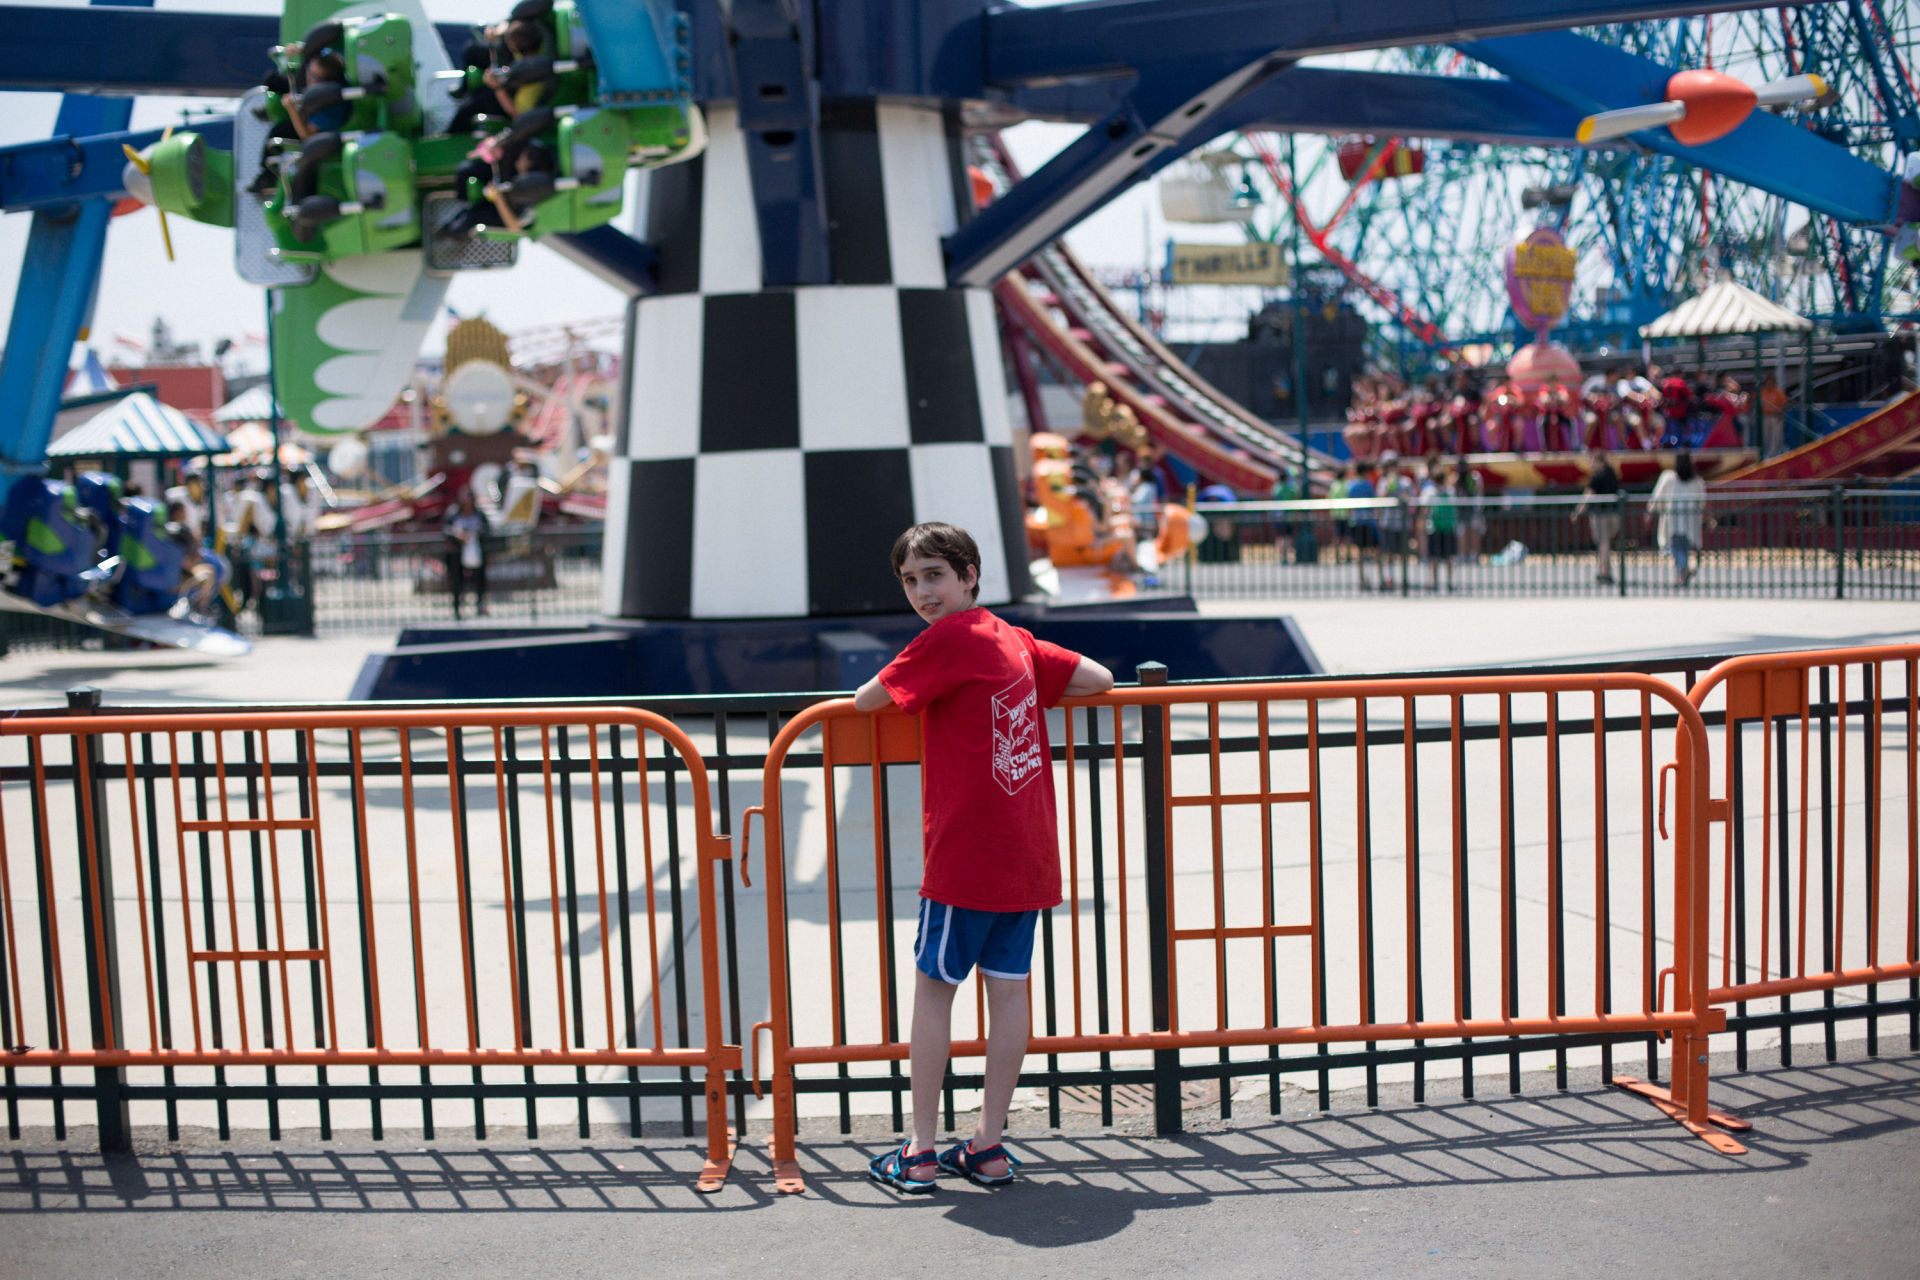 Etai Kurtzman, 12, at Luna Park in Coney Island in Brooklyn, NY May 28, 2015. The group of students from Quest to Learn School took the day trip to Coney Island to analyze user experience on games and rides at Luna Park as part of  their late-spring school curriculum.